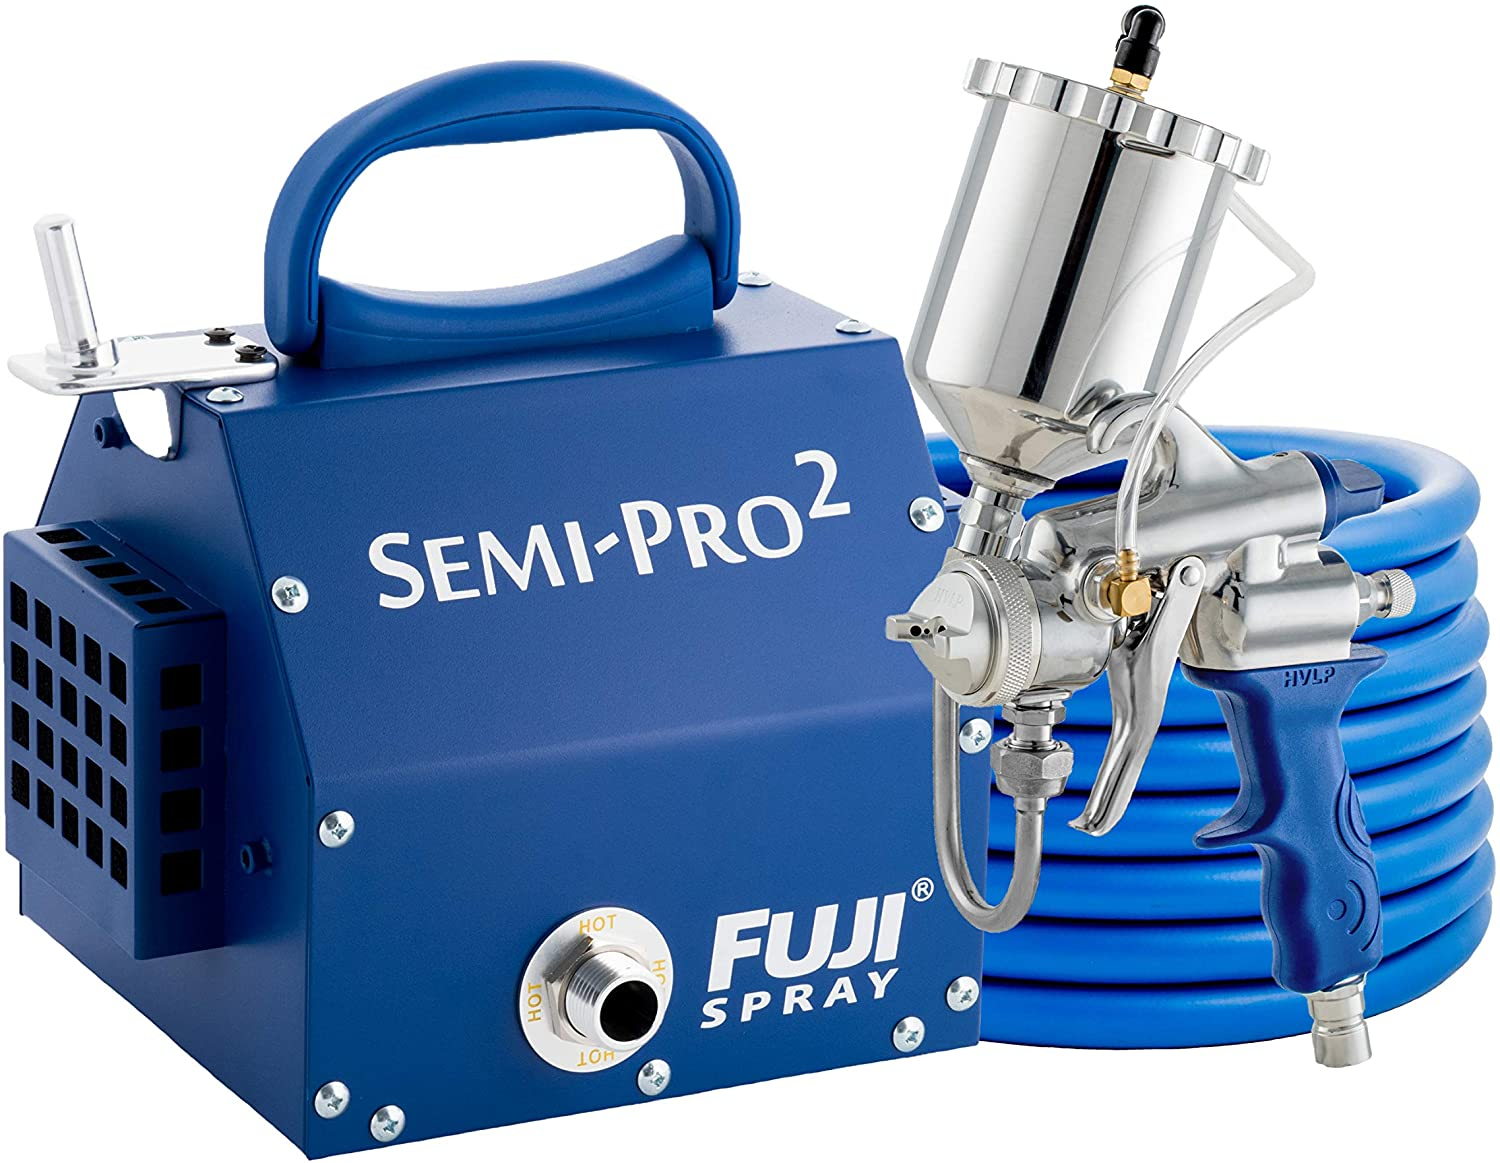 Fuji 2203G Semi-PRO 2 paint sprayer